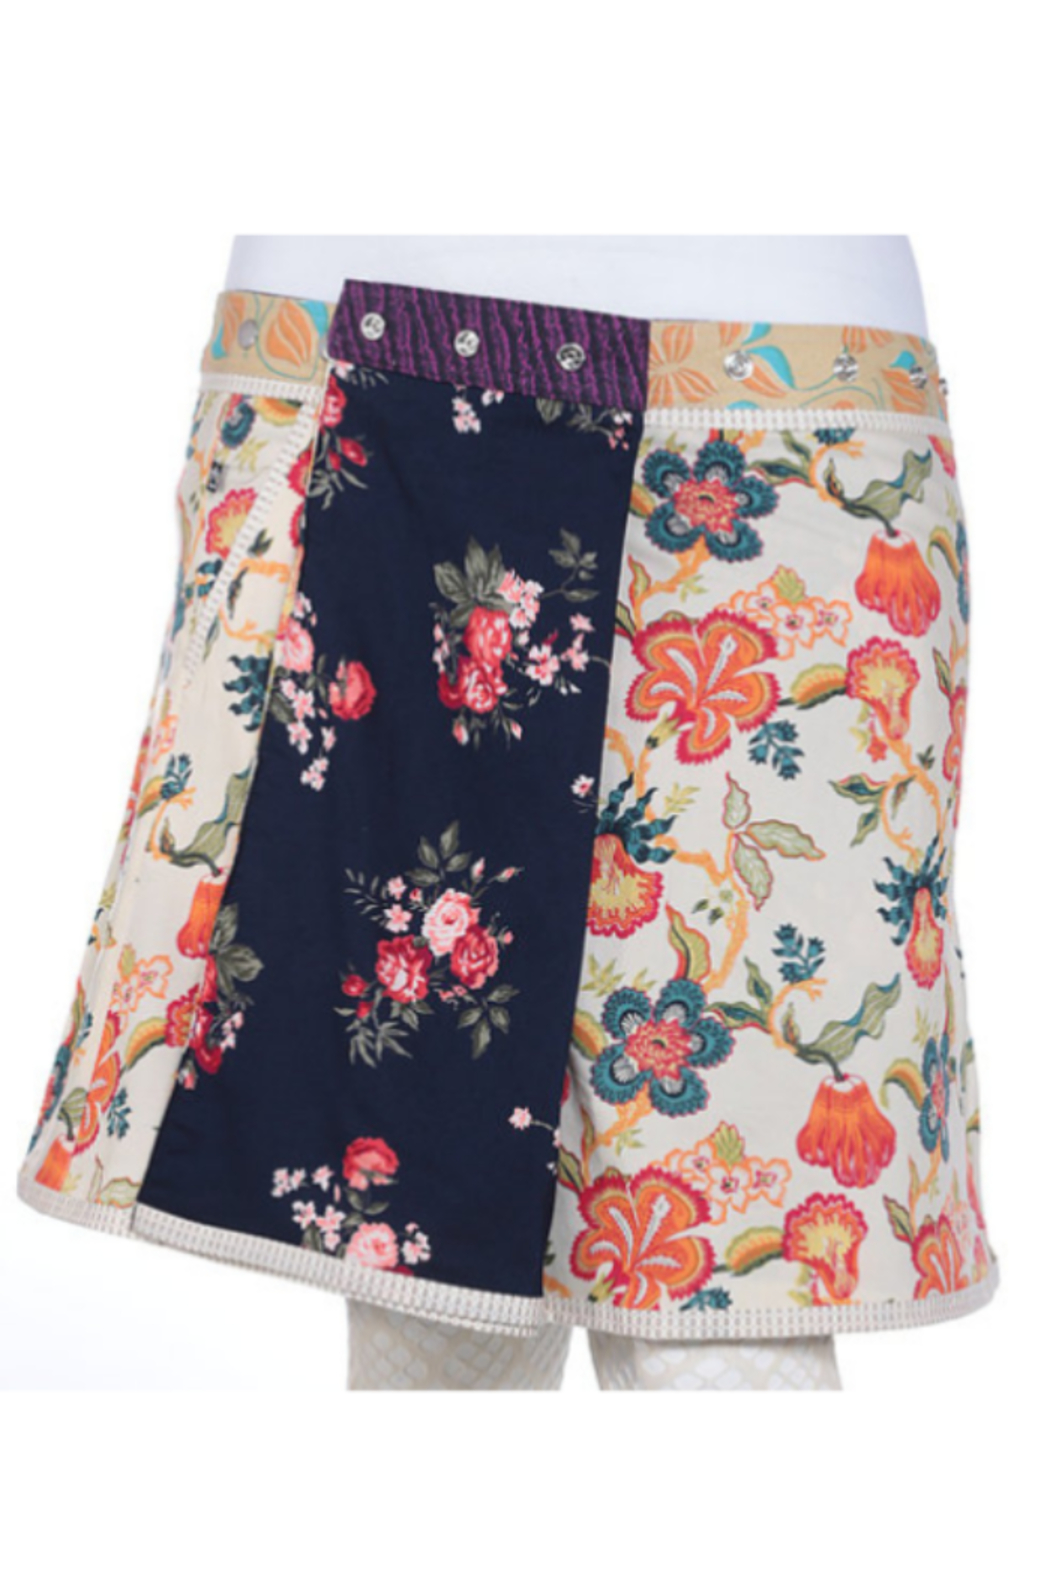 IBIZA Reversible rayon skirt with pockets (sizes 18-30 and 23